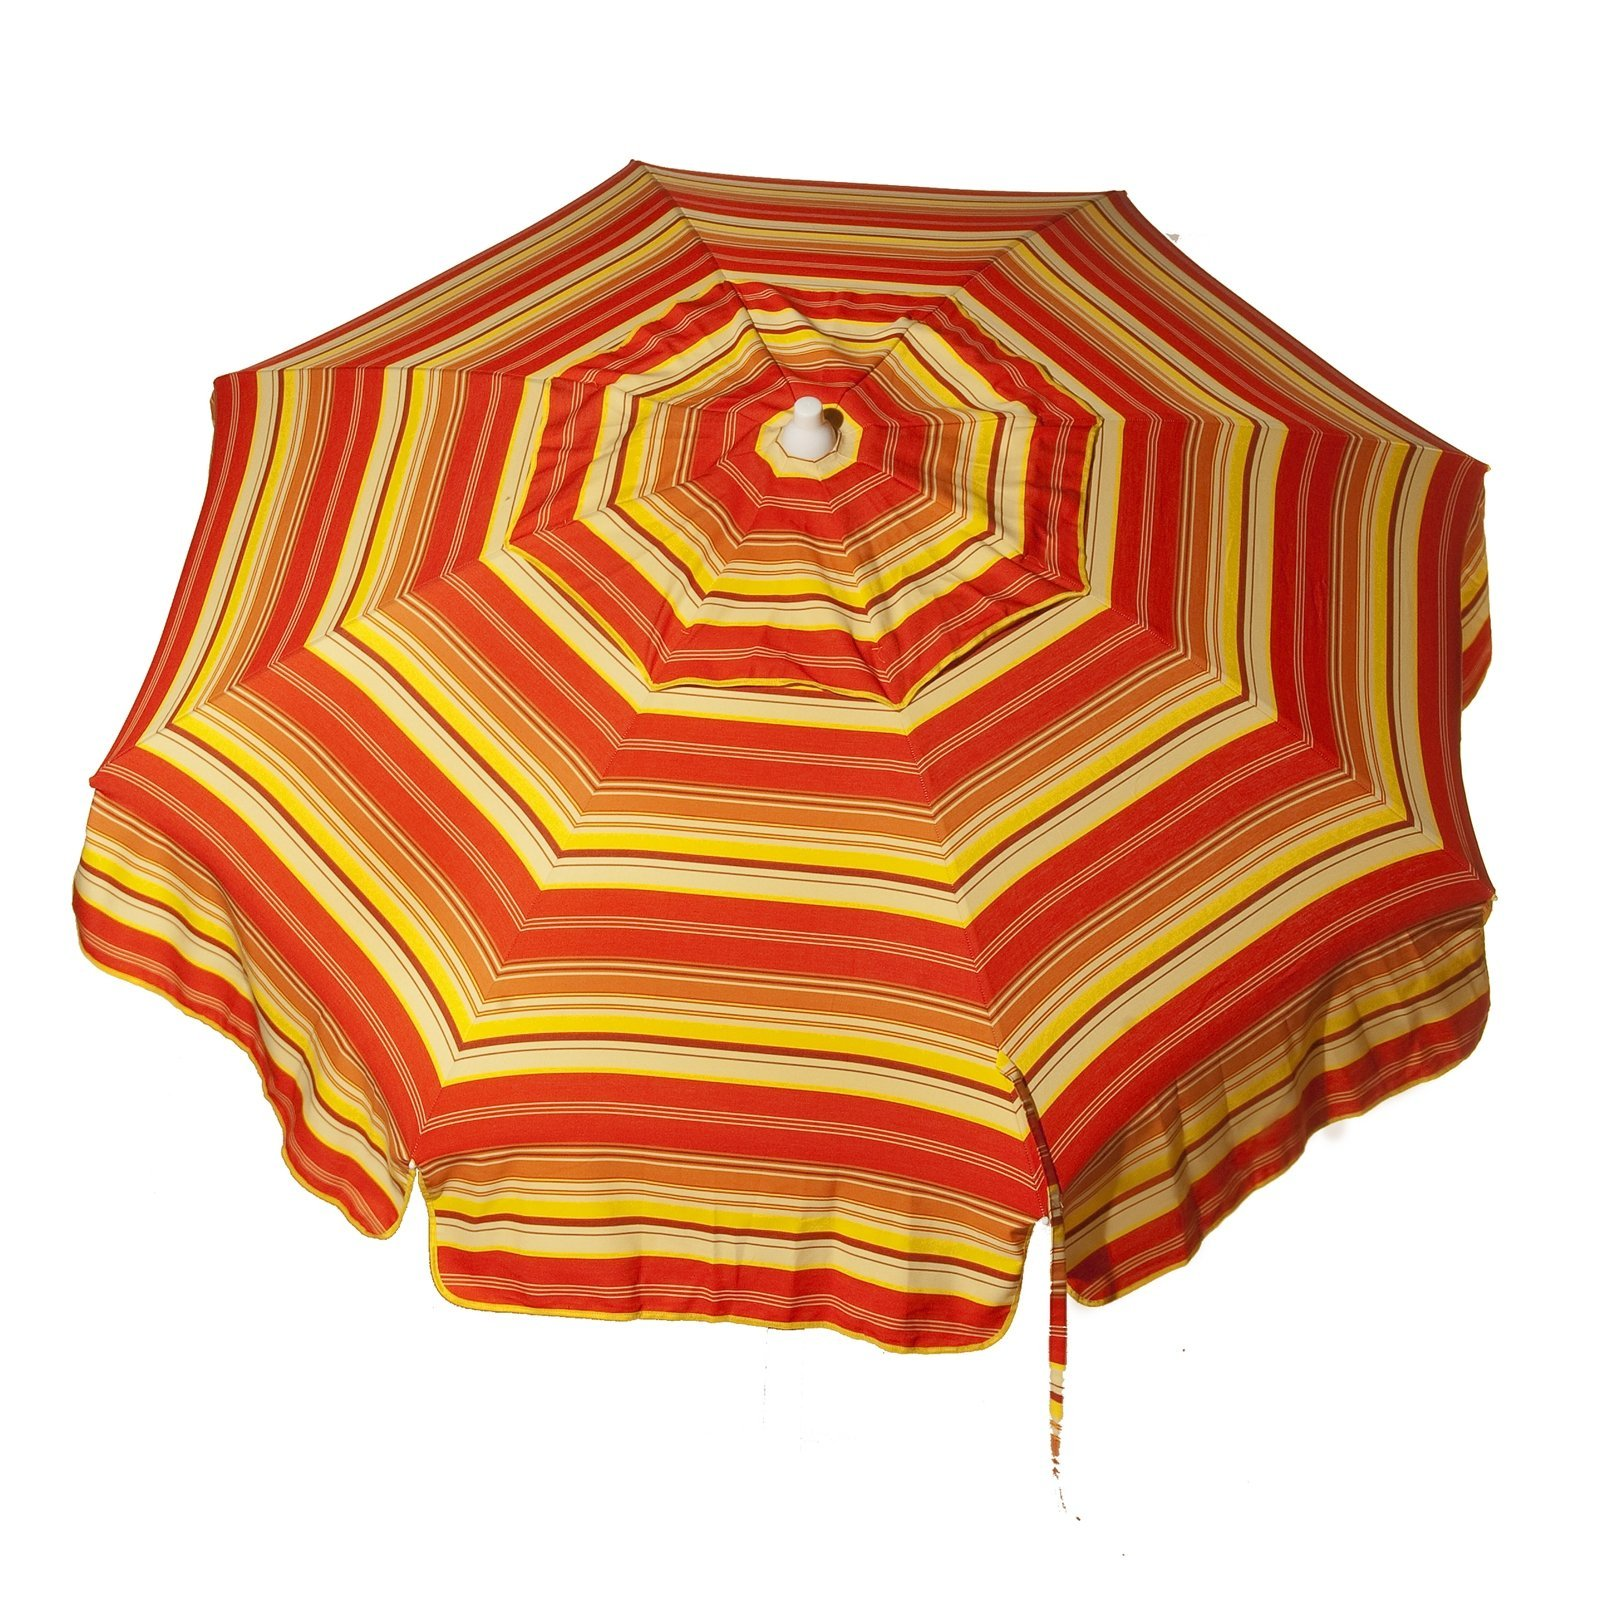 Italian 6 foot Push/Tilt Umbrella Acrylic Stripes Red, Orange and Yellow - Patio Pole